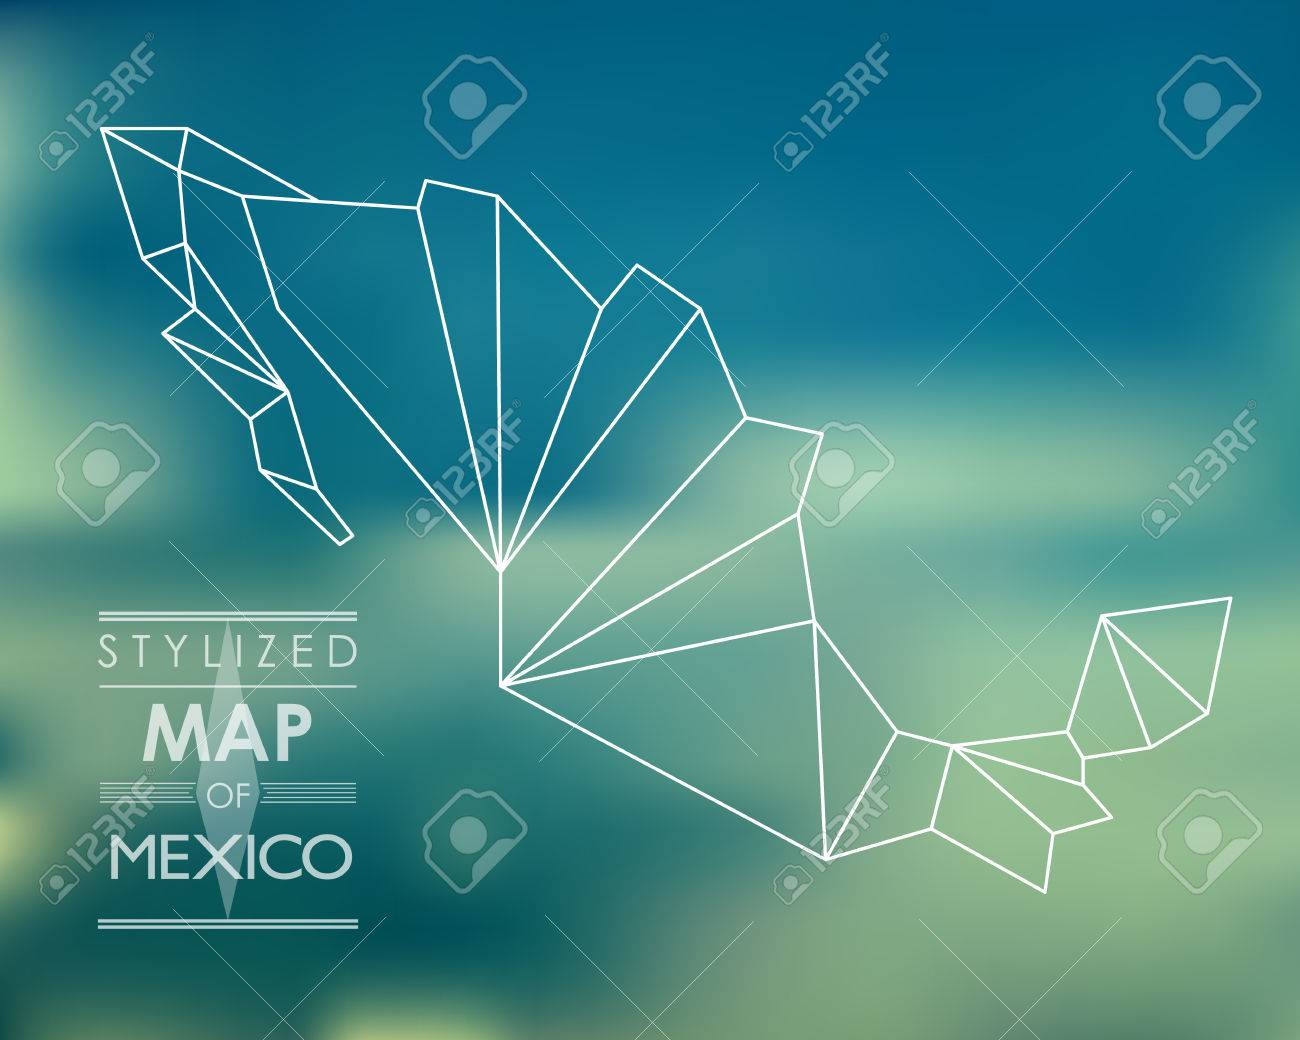 stylized map of mexico map concept royalty free cliparts vectors